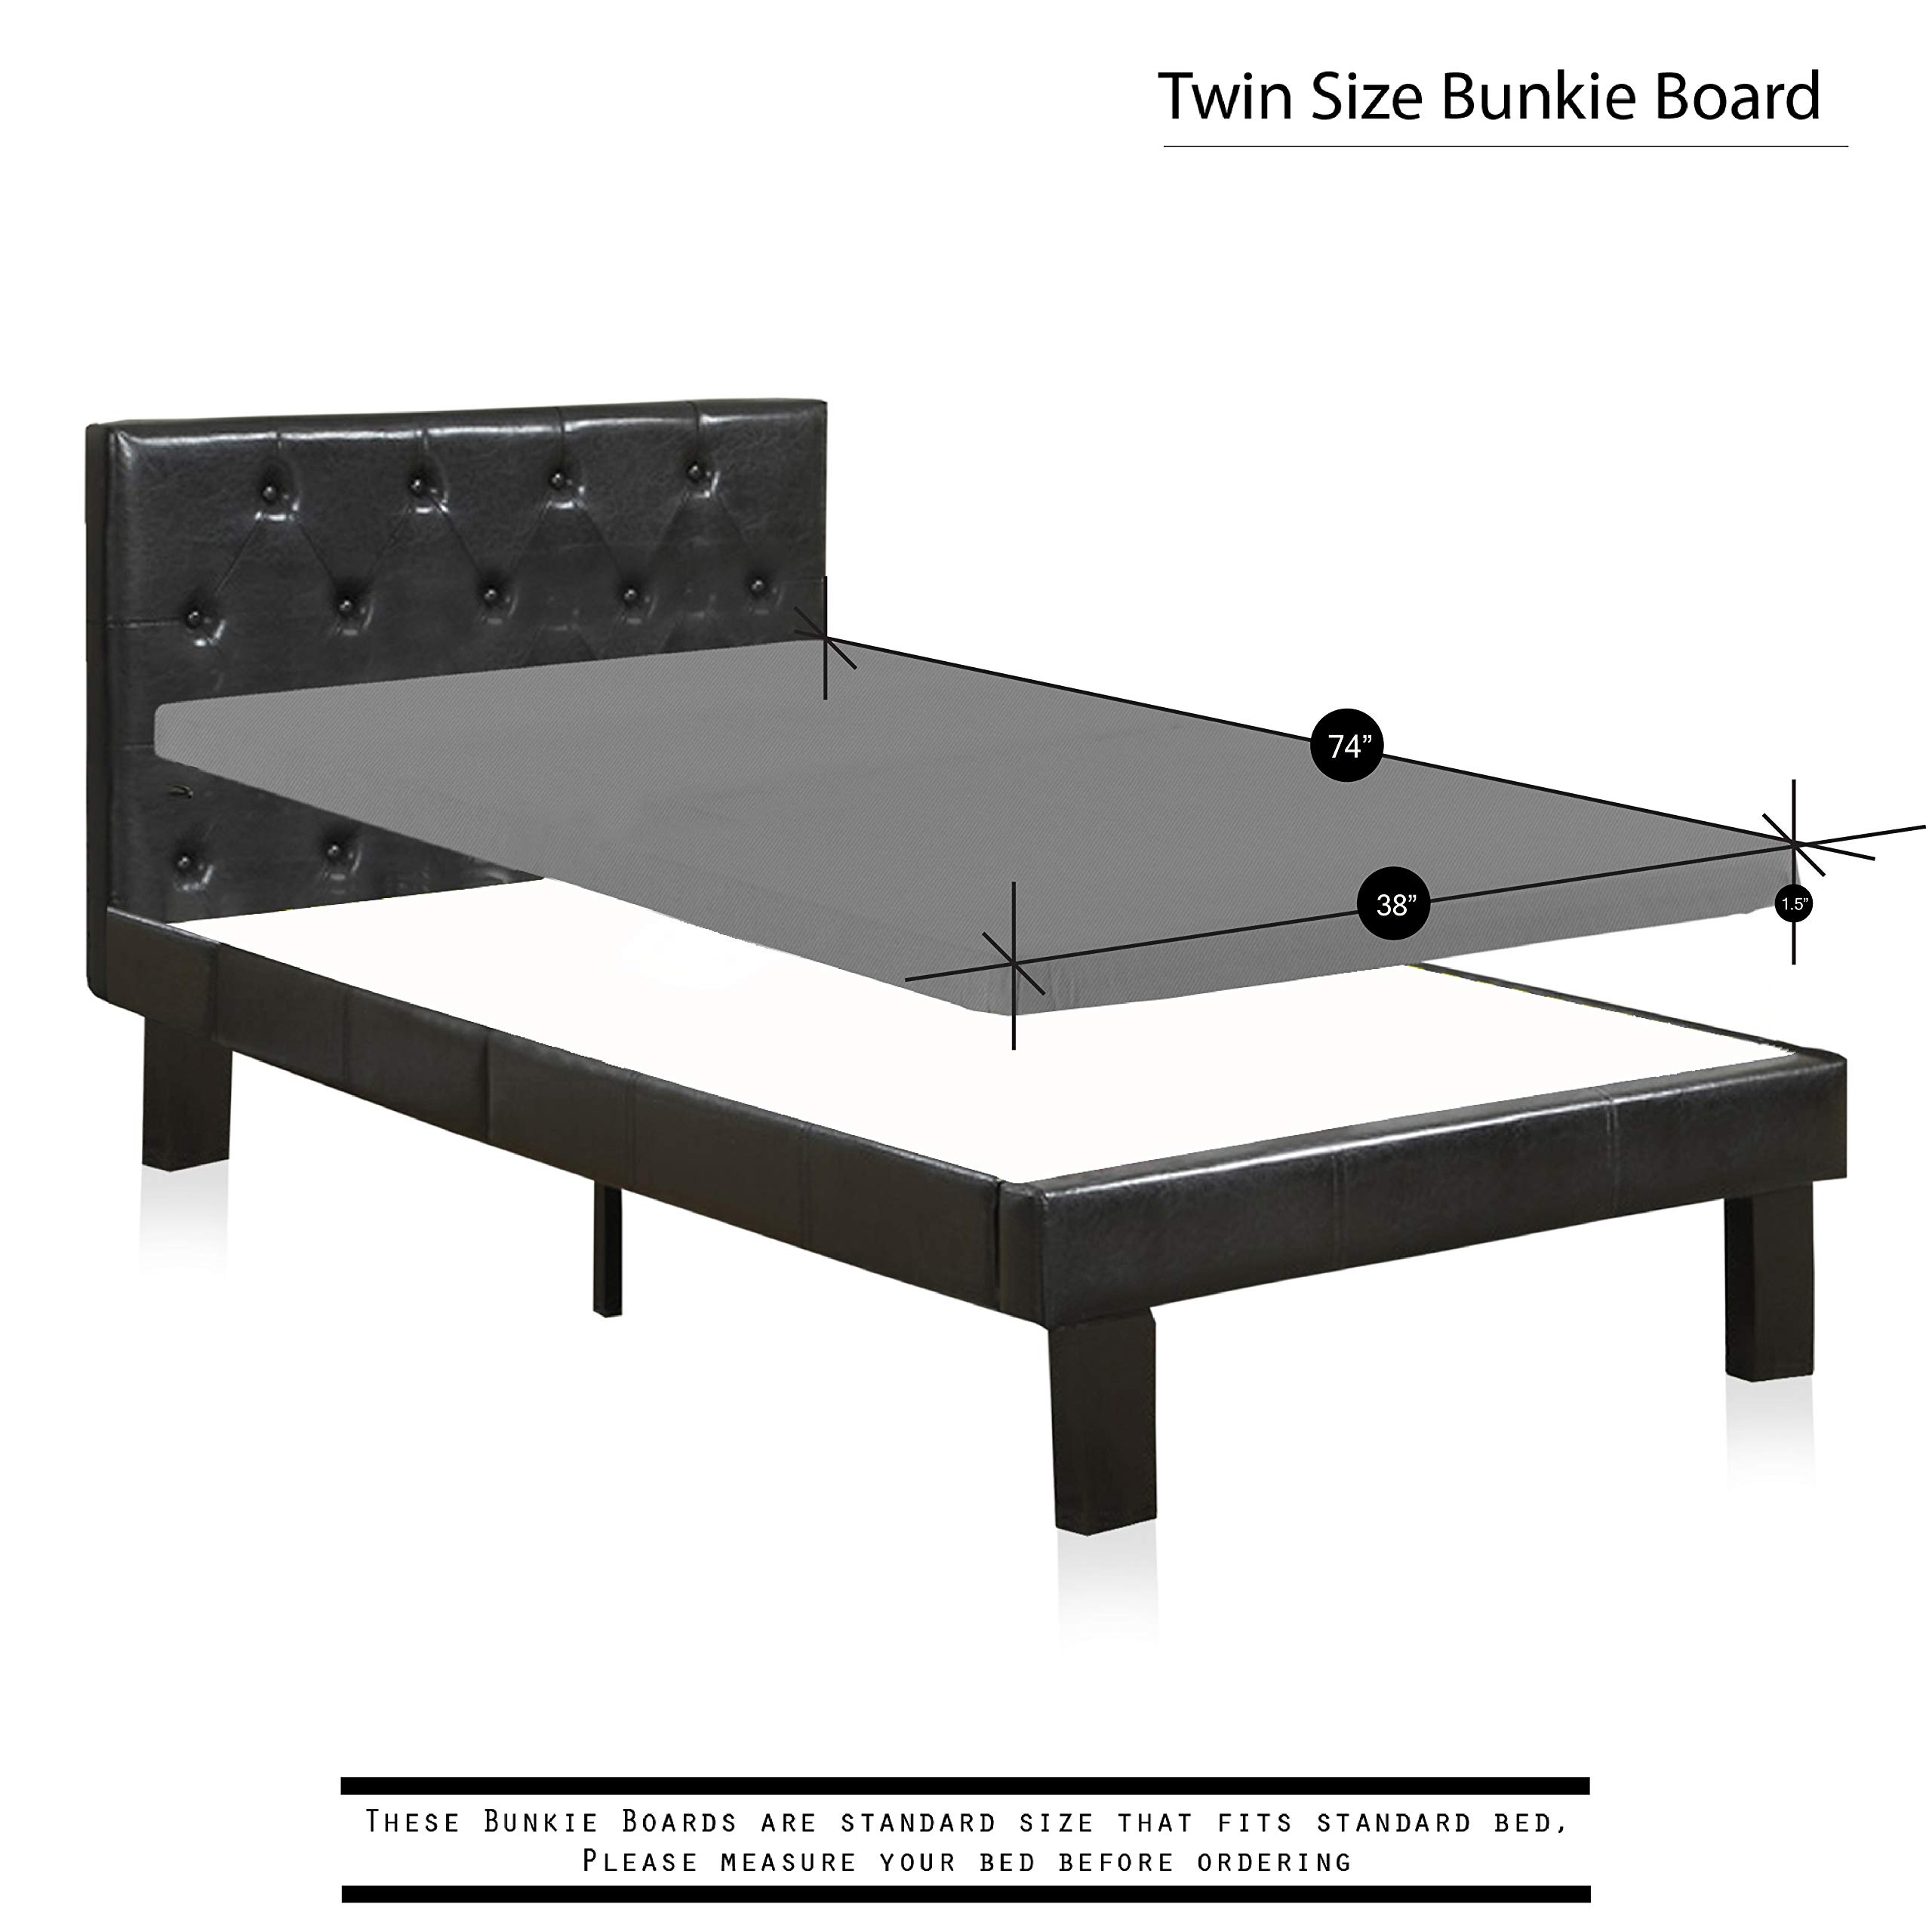 Spinal Solution, 2'' Fully Assembled Foundation Bunkie Board, Twin Size